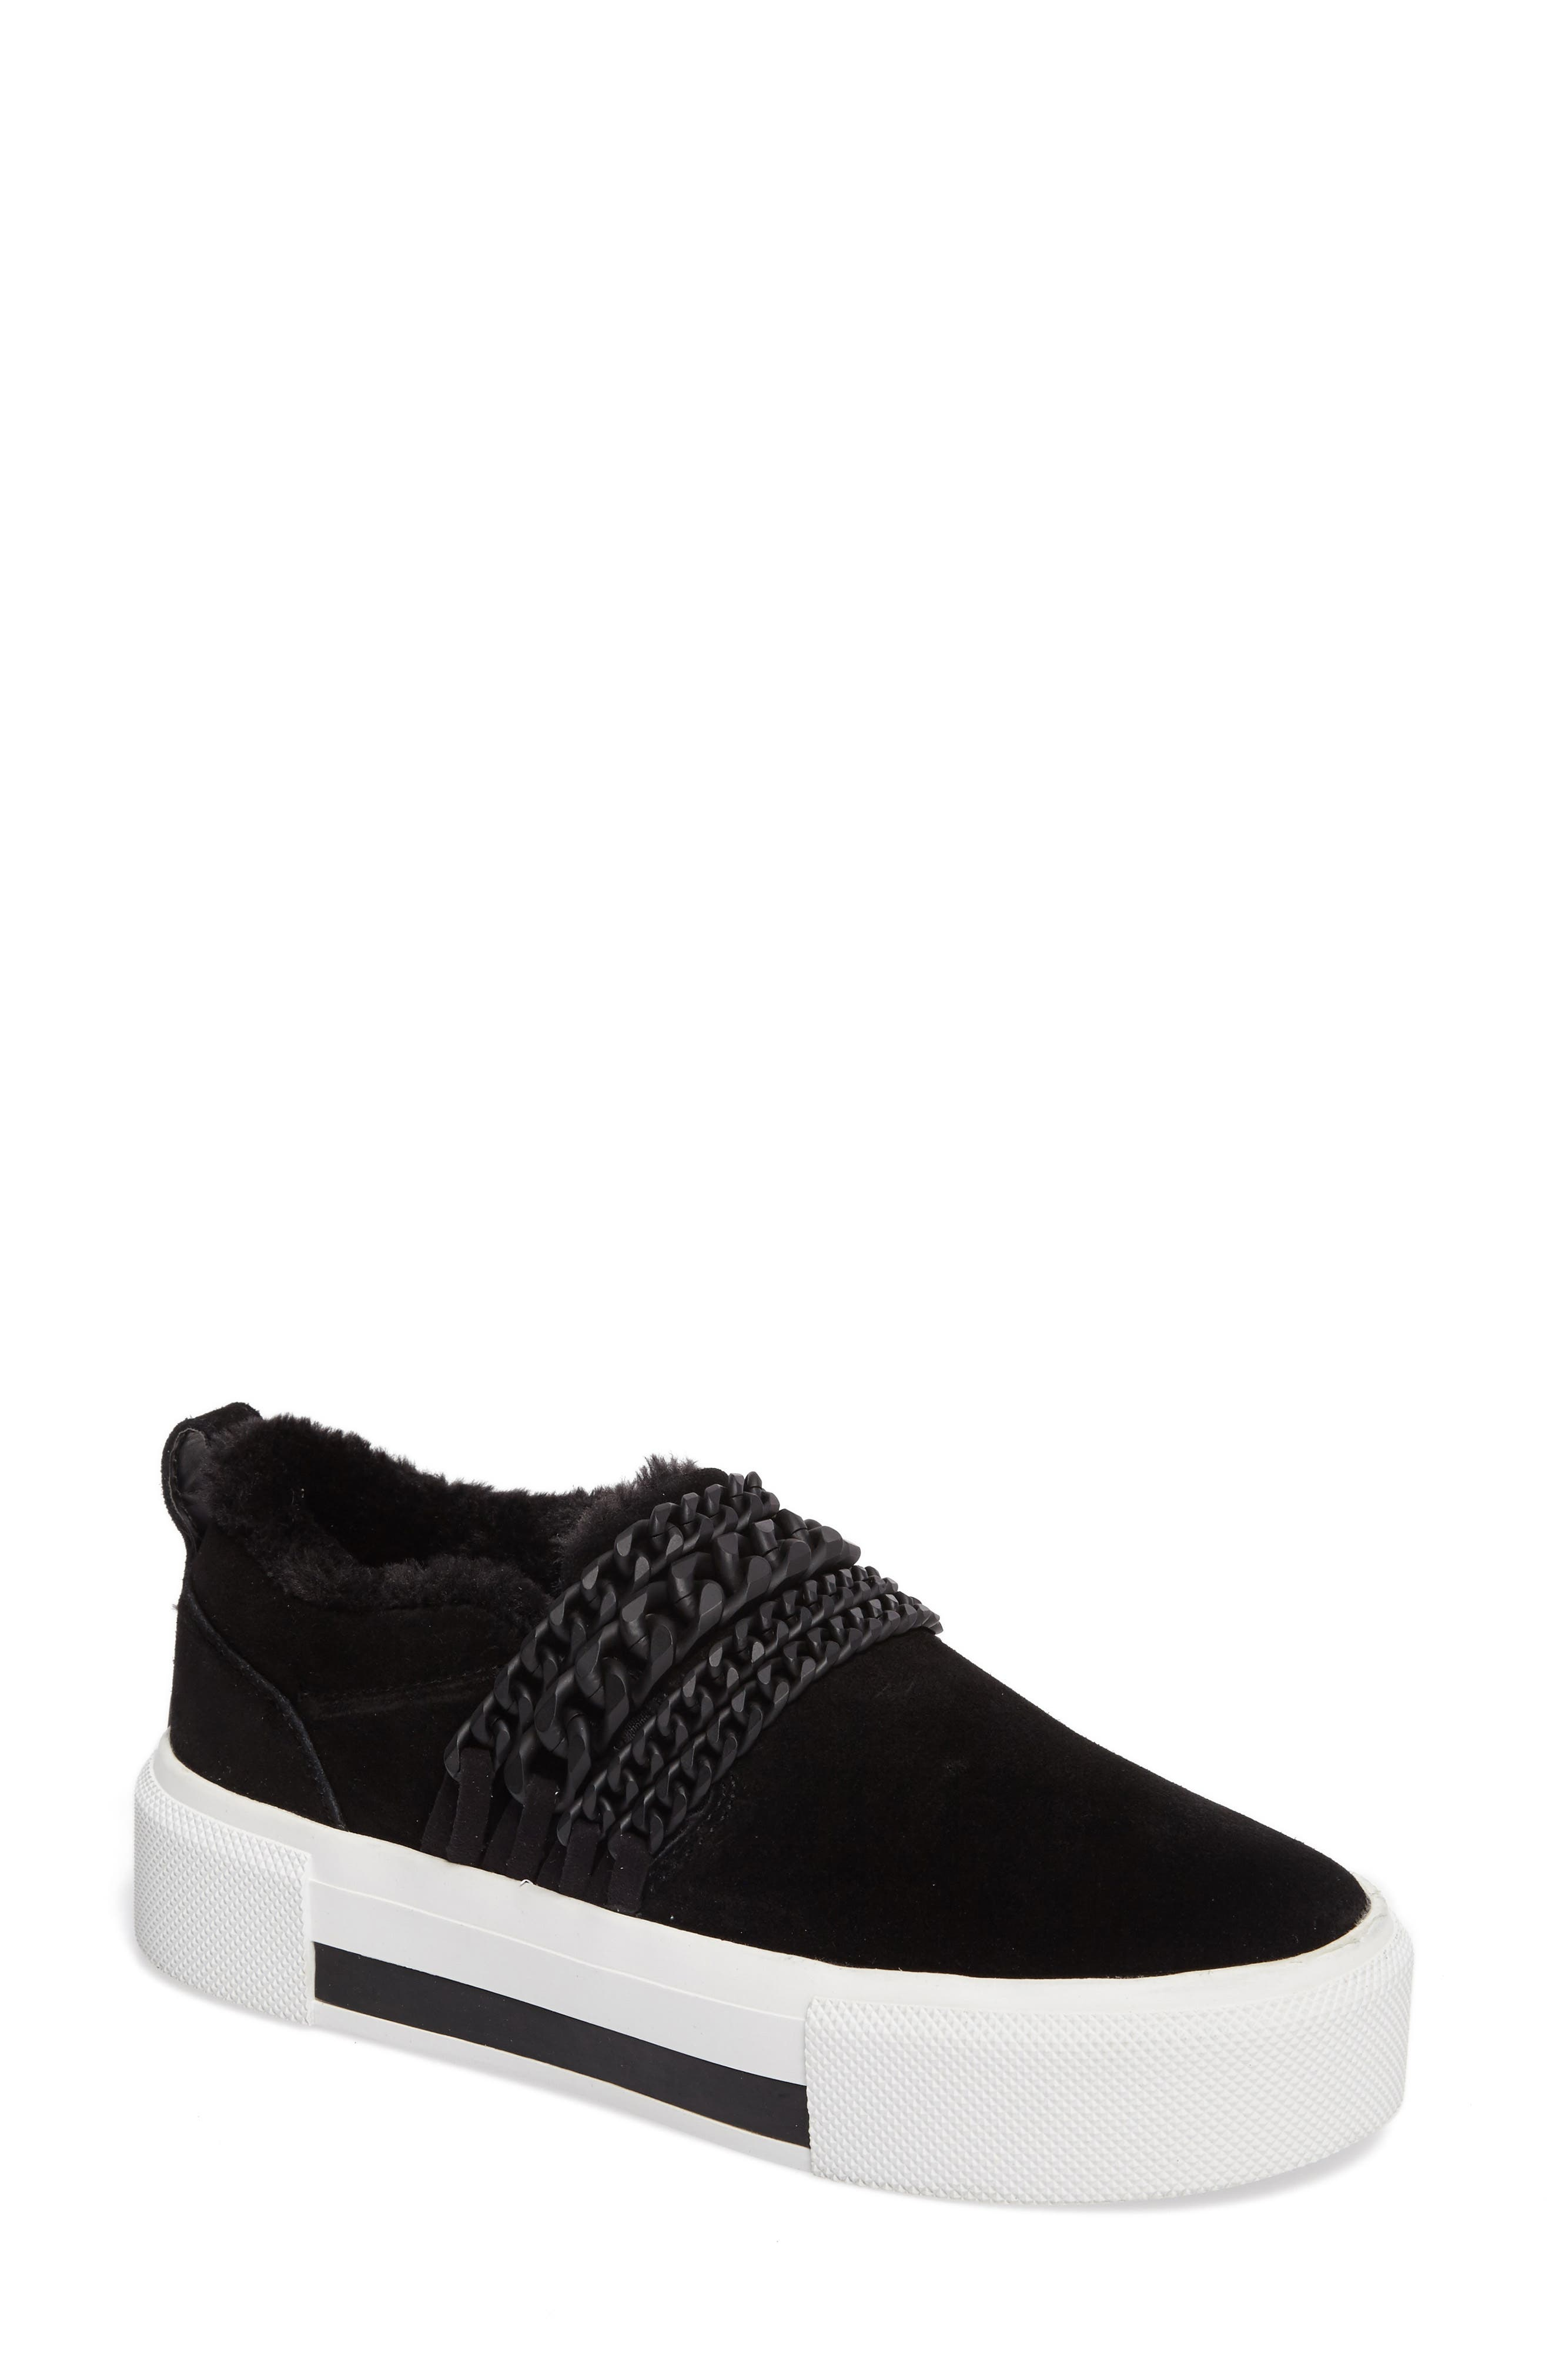 Tory Platform Sneaker,                         Main,                         color, 008